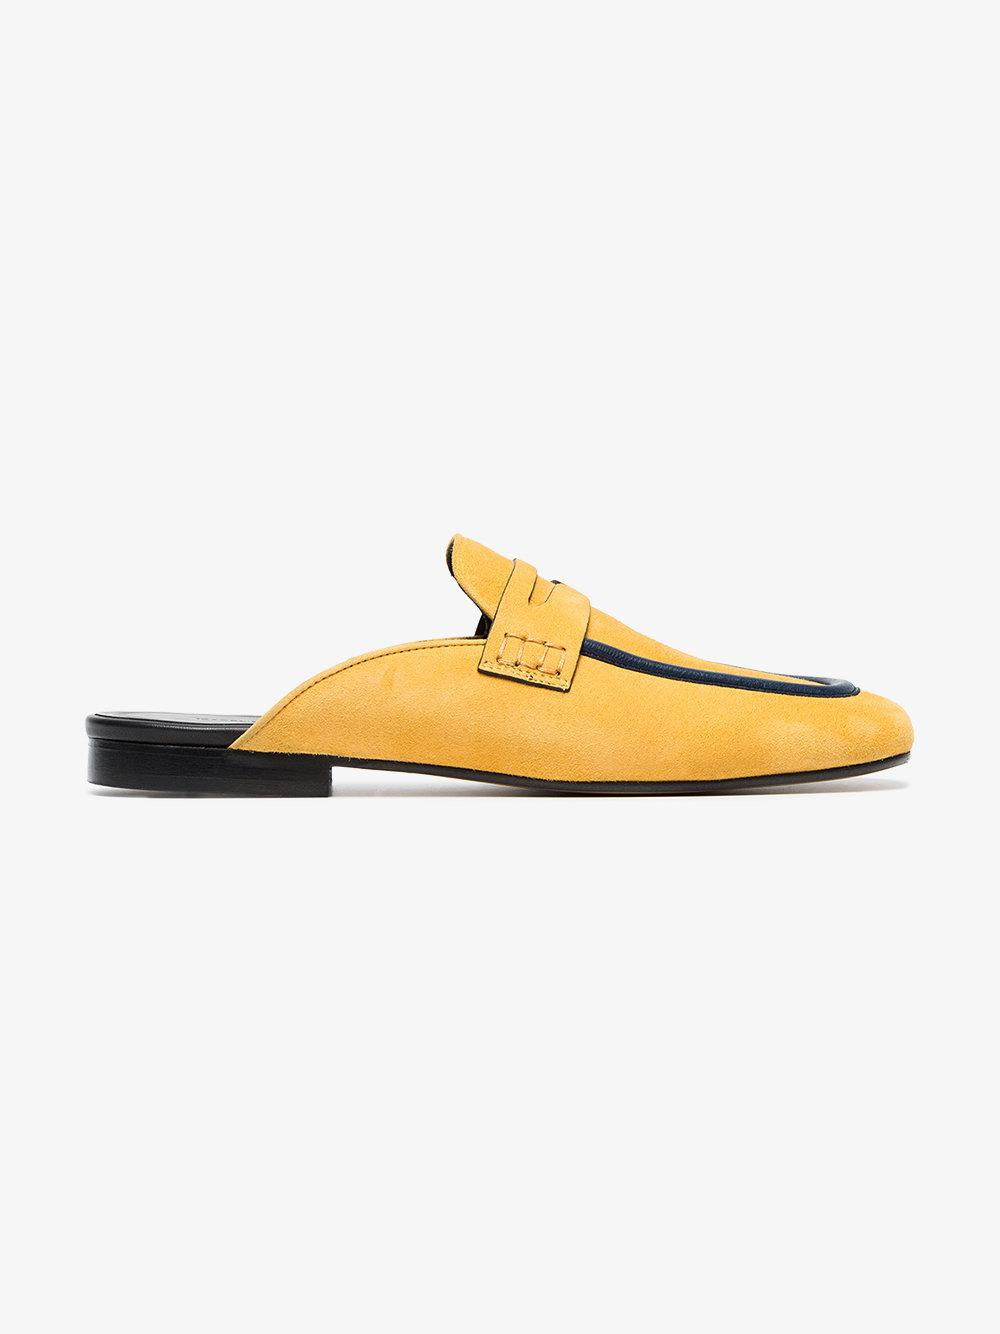 Isabel Marant Follan 20 Suede Leather Loafers Shop Offer Cheap Online Cheap With Paypal Best Supplier 100% Authentic Cheap Price BdDz6iUars